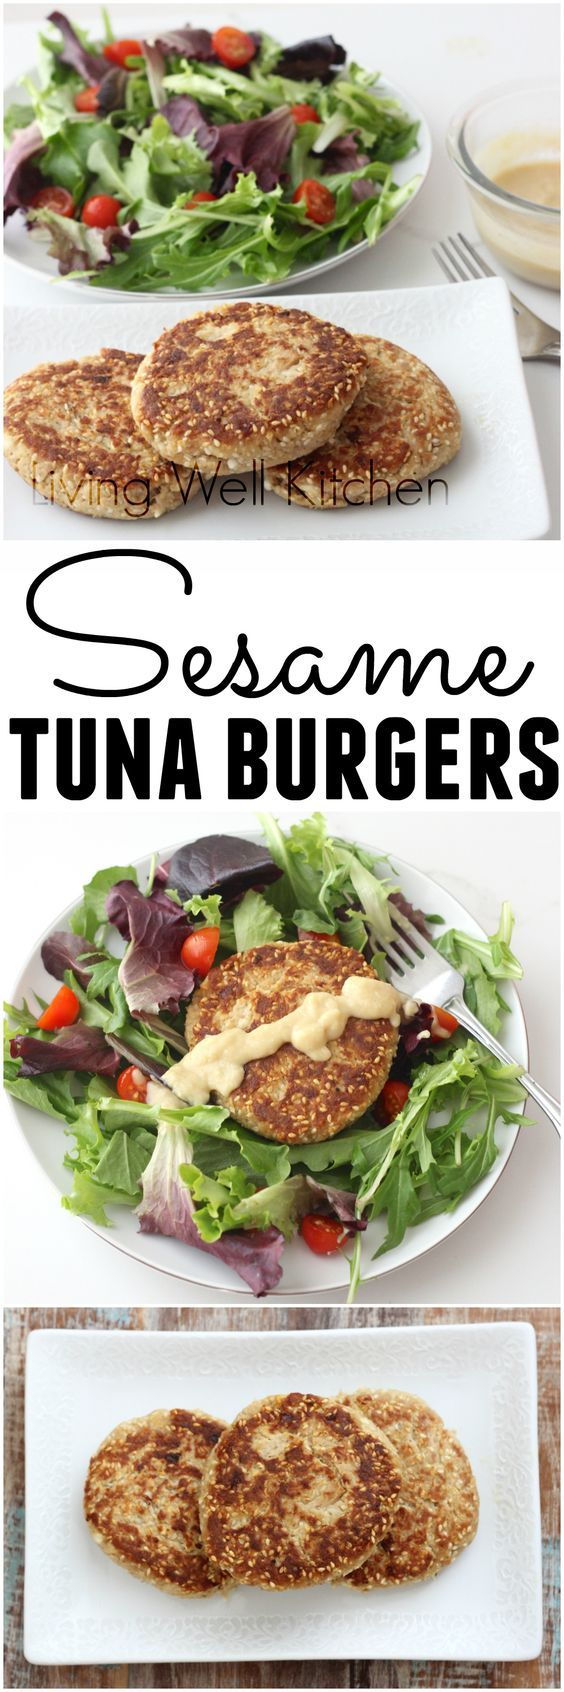 Sesame Tuna Burgers turn boring canned tuna into a delicious meal that ...